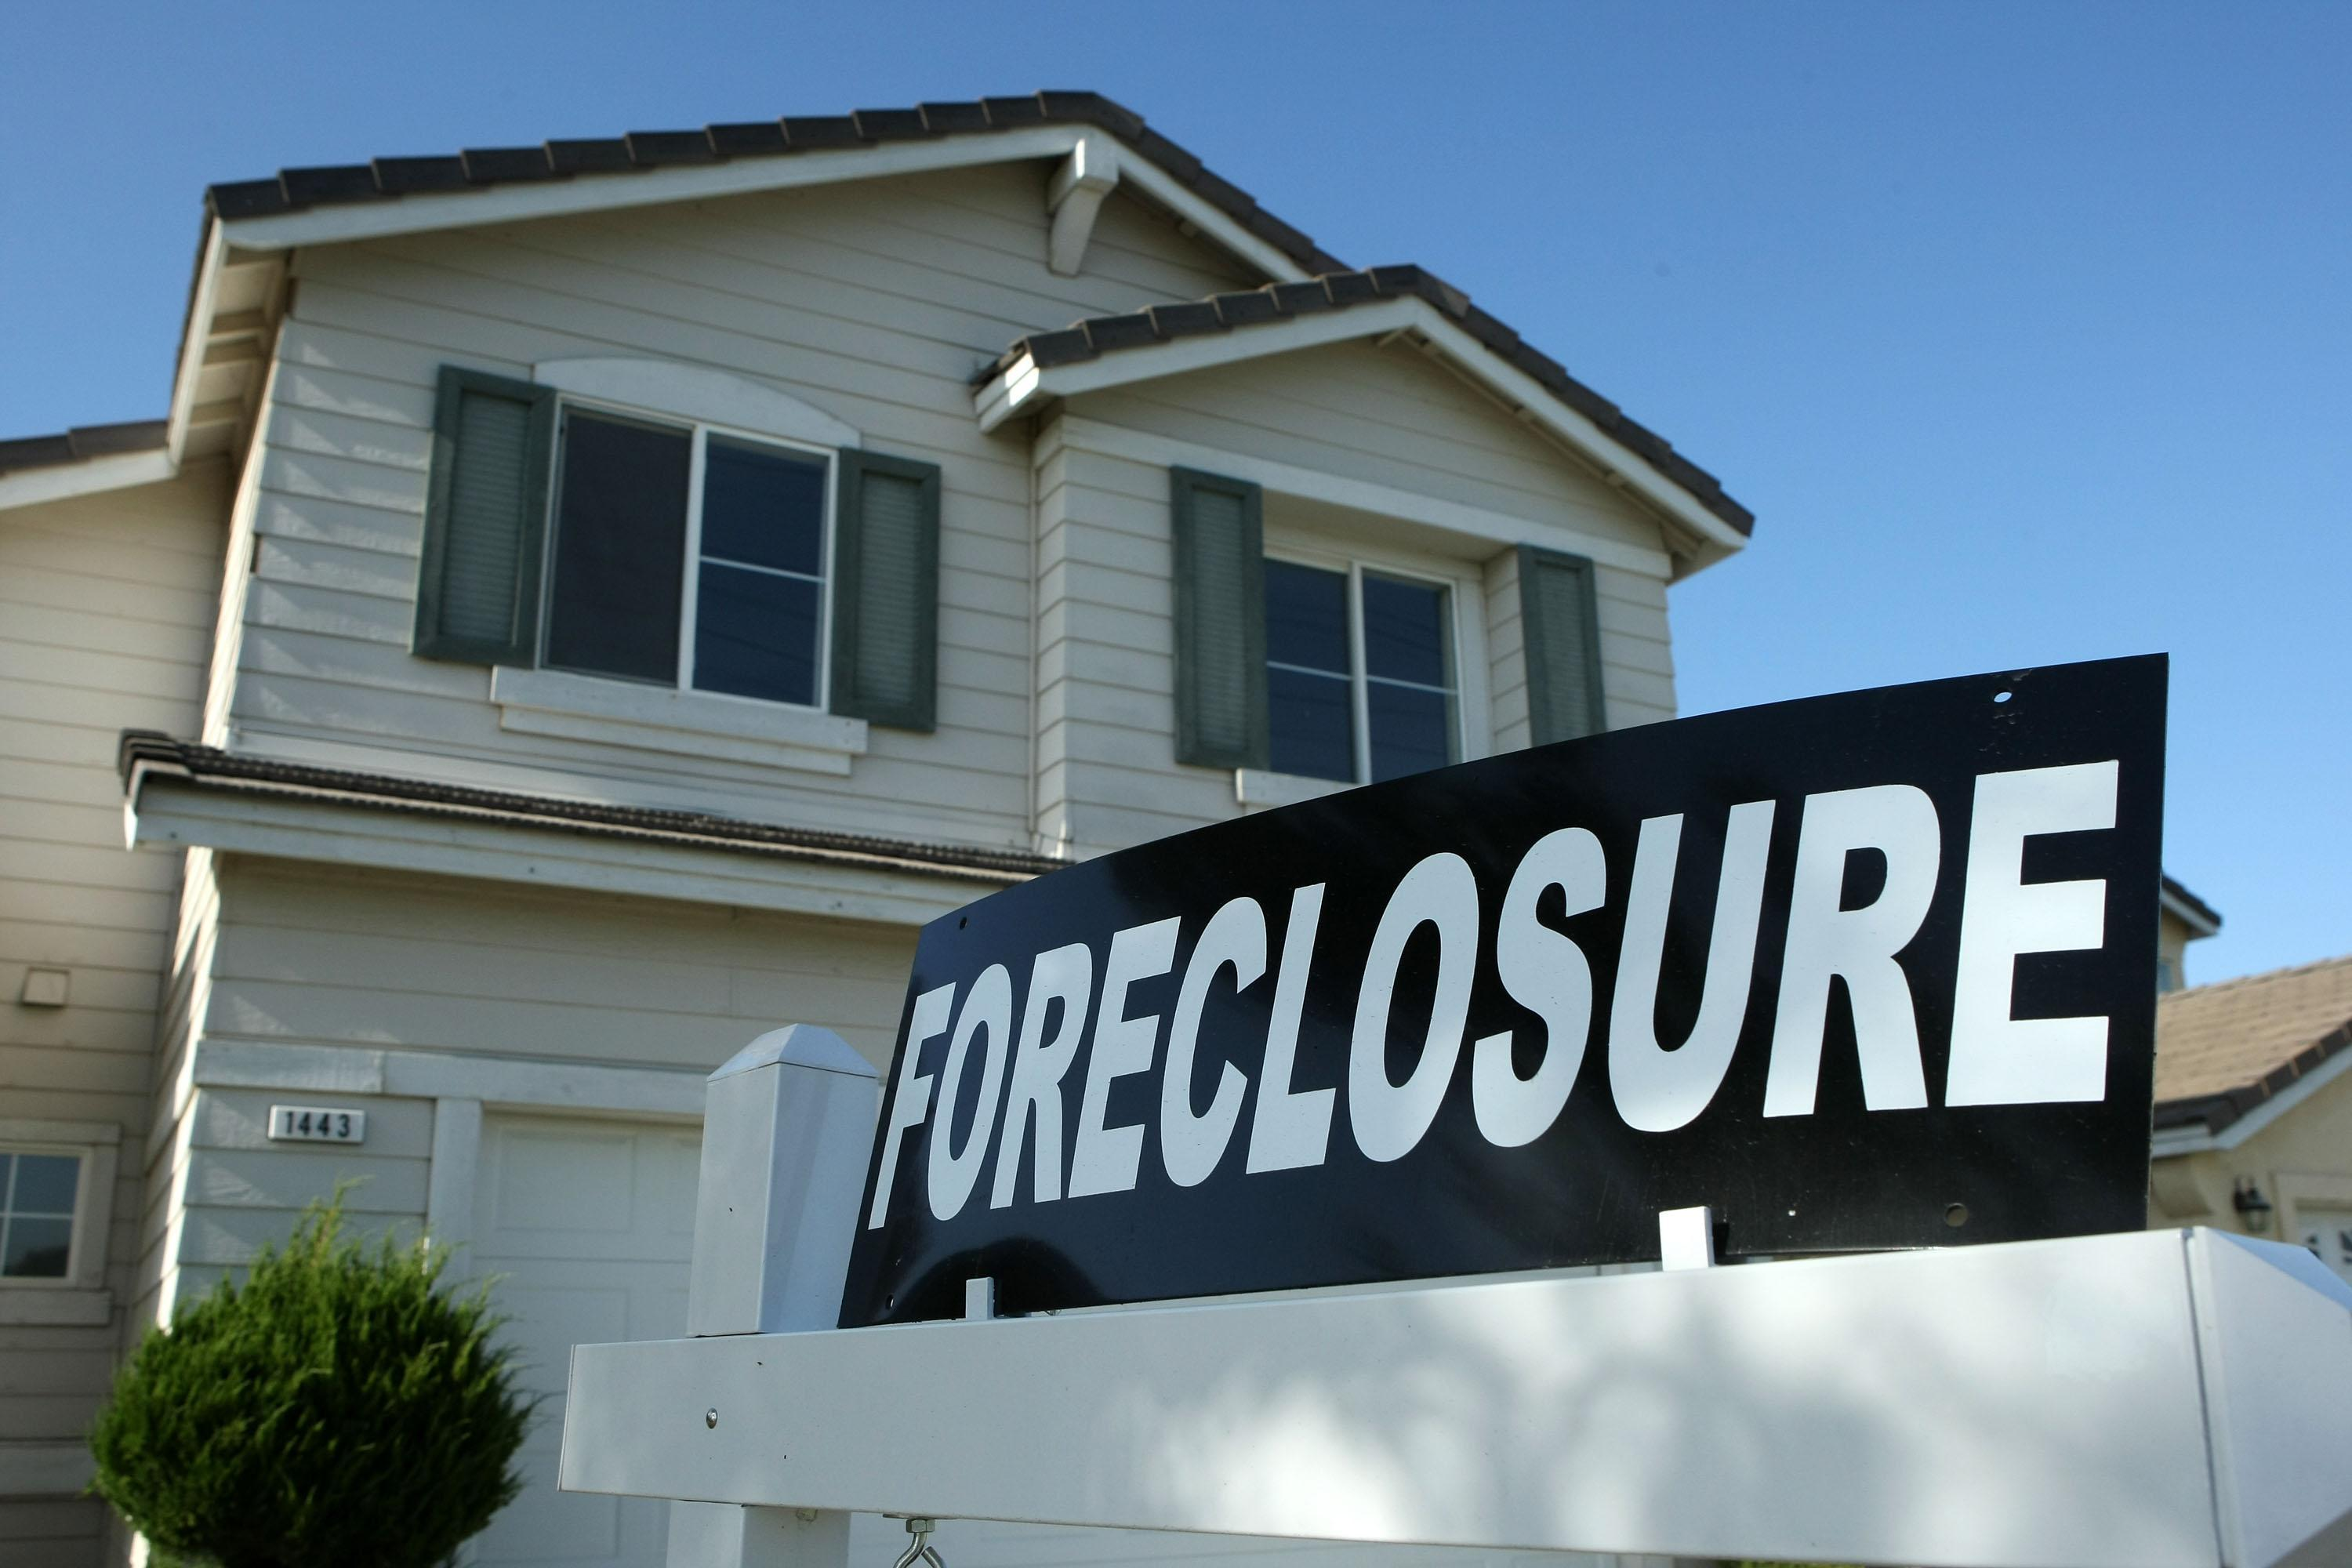 National Foreclosure Nightmare Coming to an End?